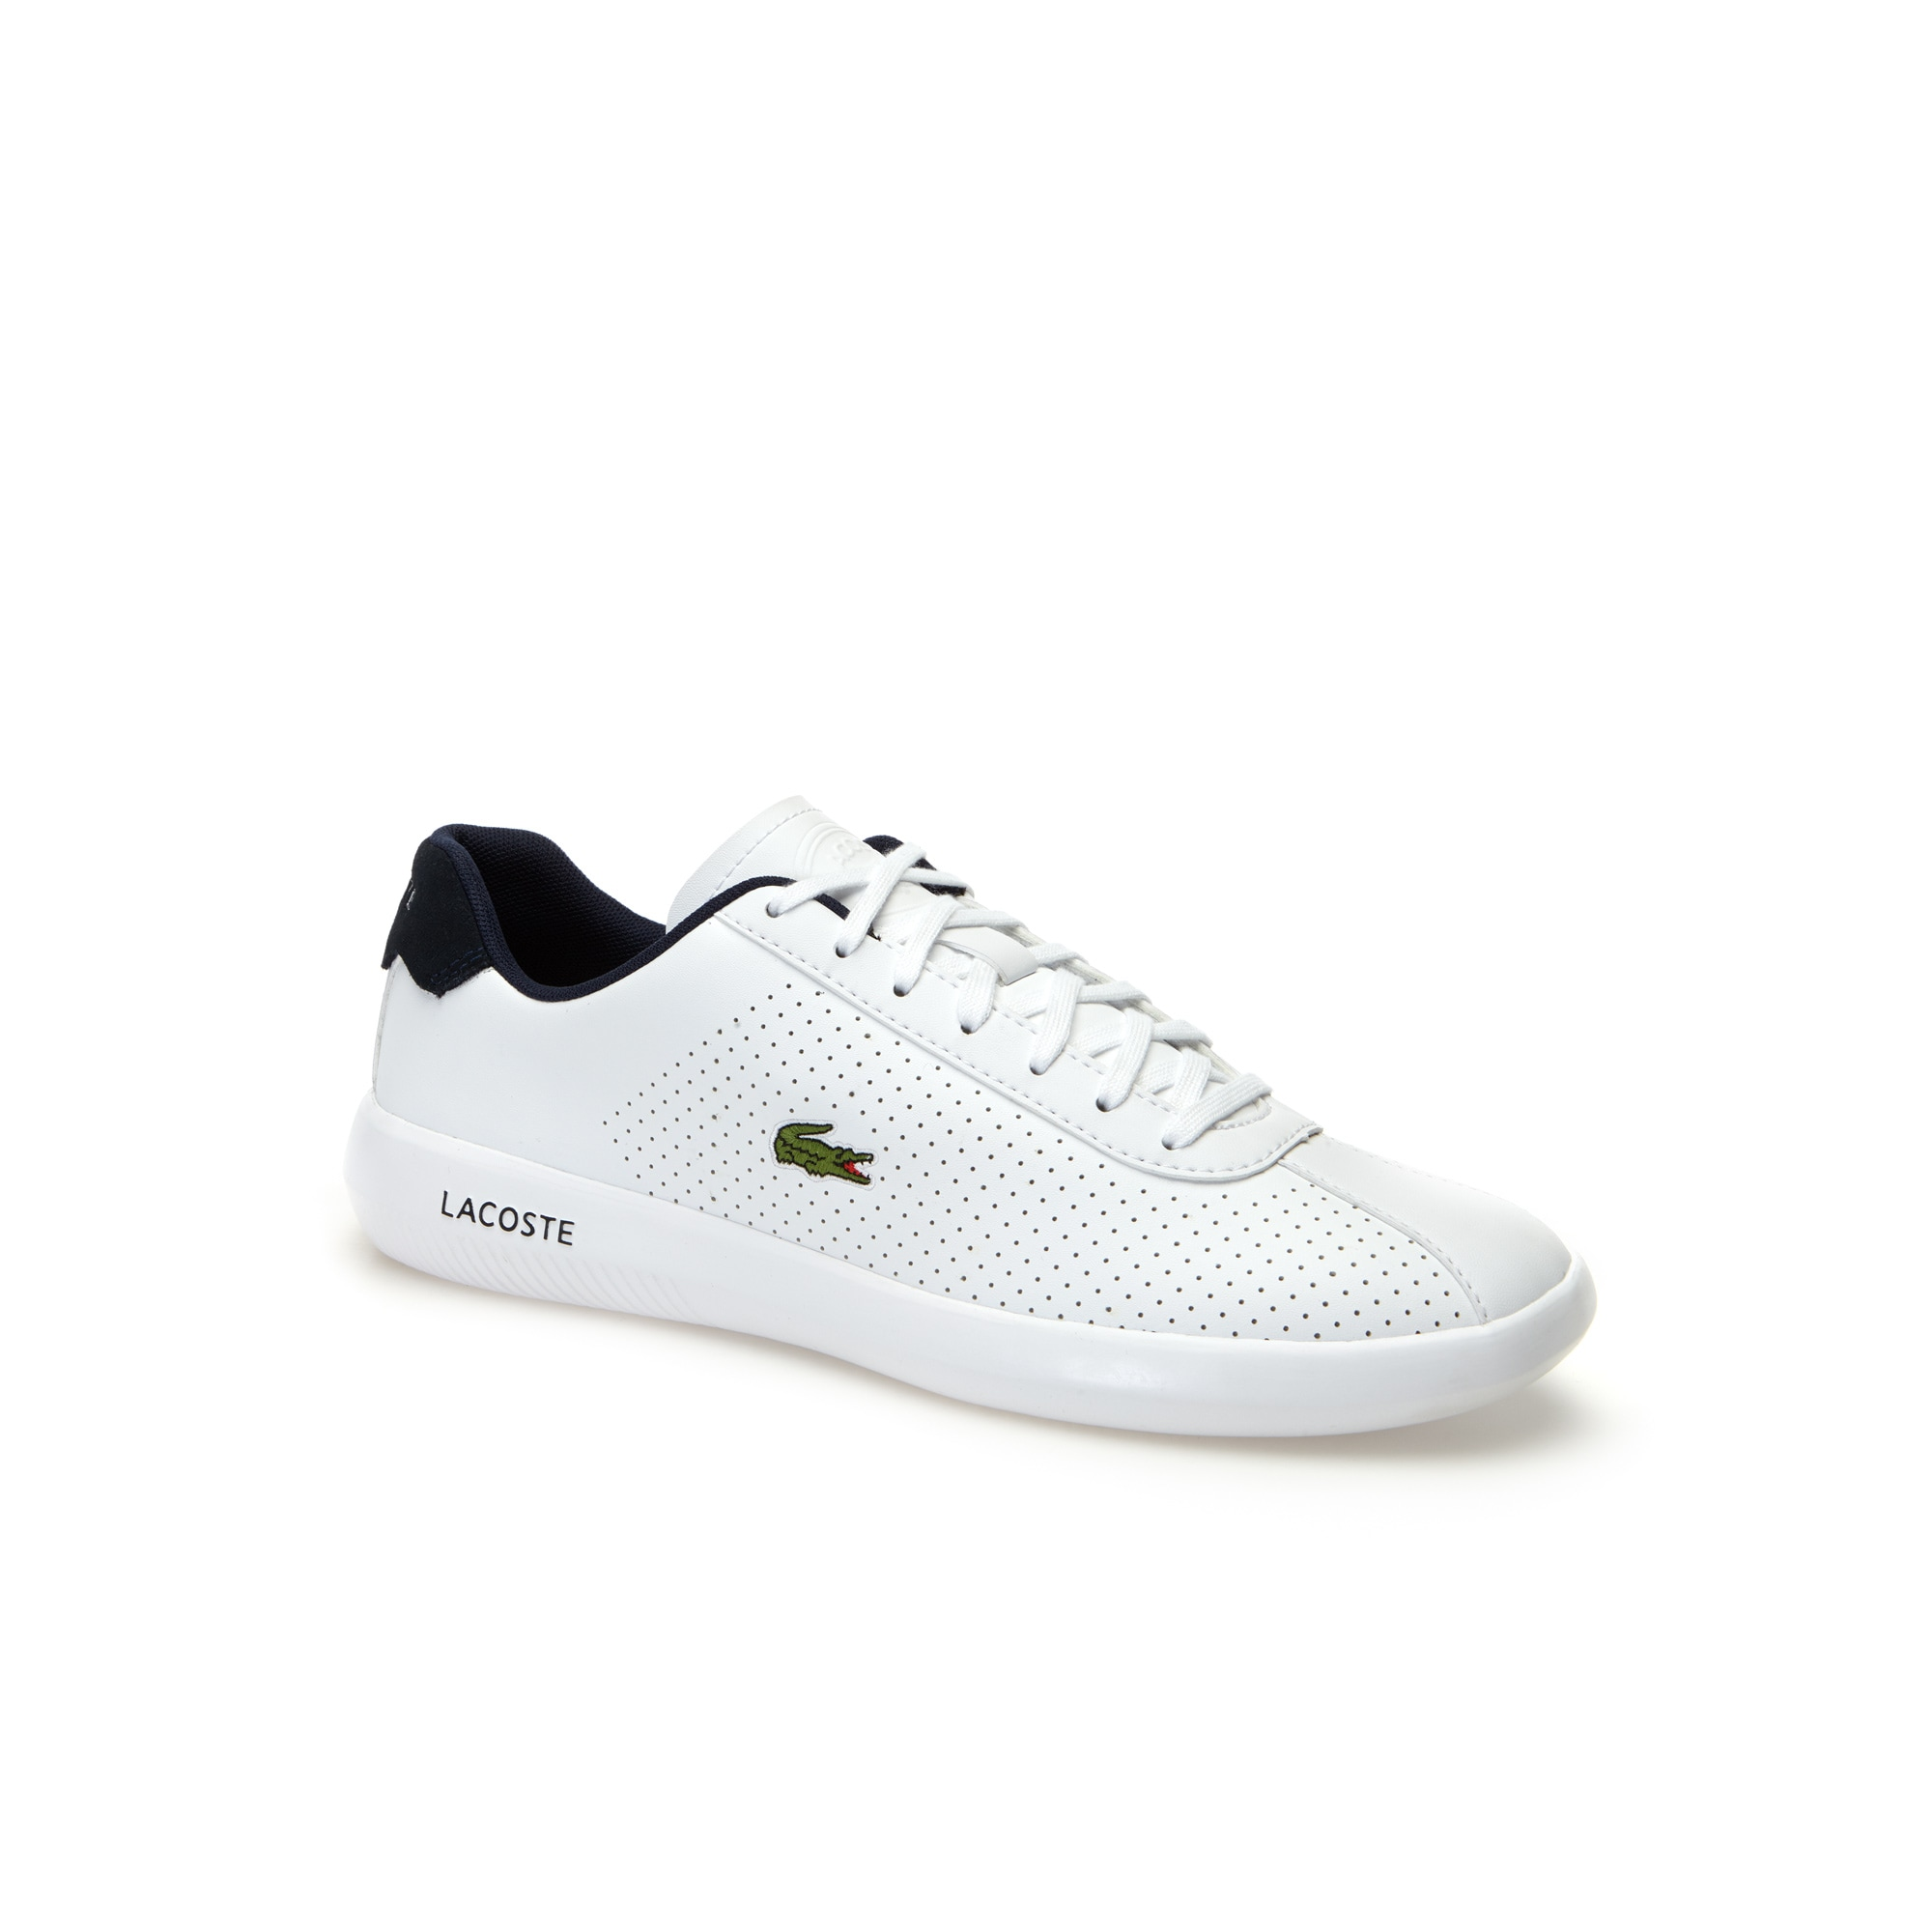 a1f5c9a1e9490 LACOSTE - Nova Boutique Digital